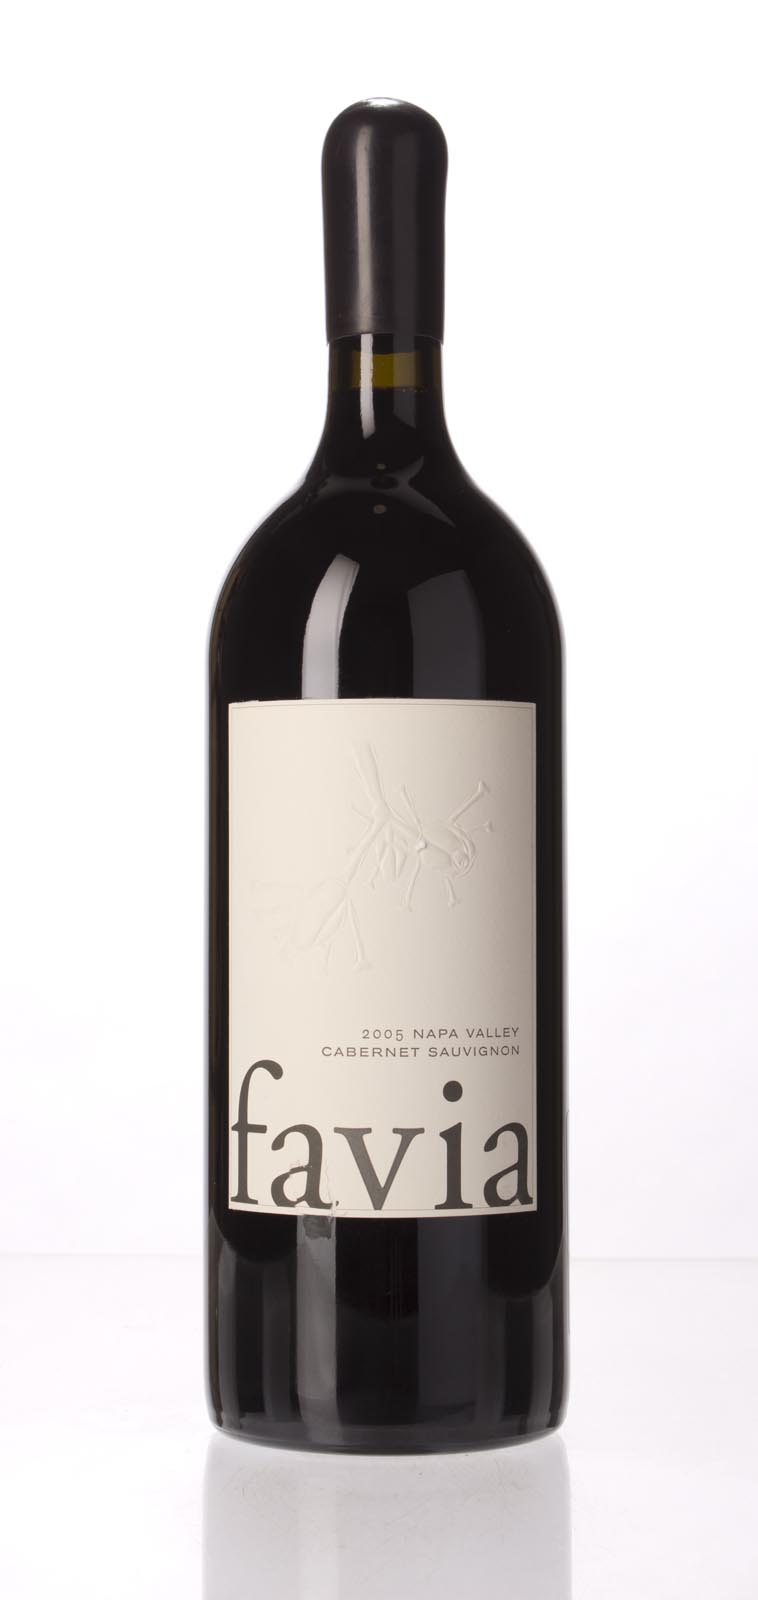 Favia Cabernet Sauvignon Napa Valley 2005, 1.5L () from The BPW - Merchants of rare and fine wines.